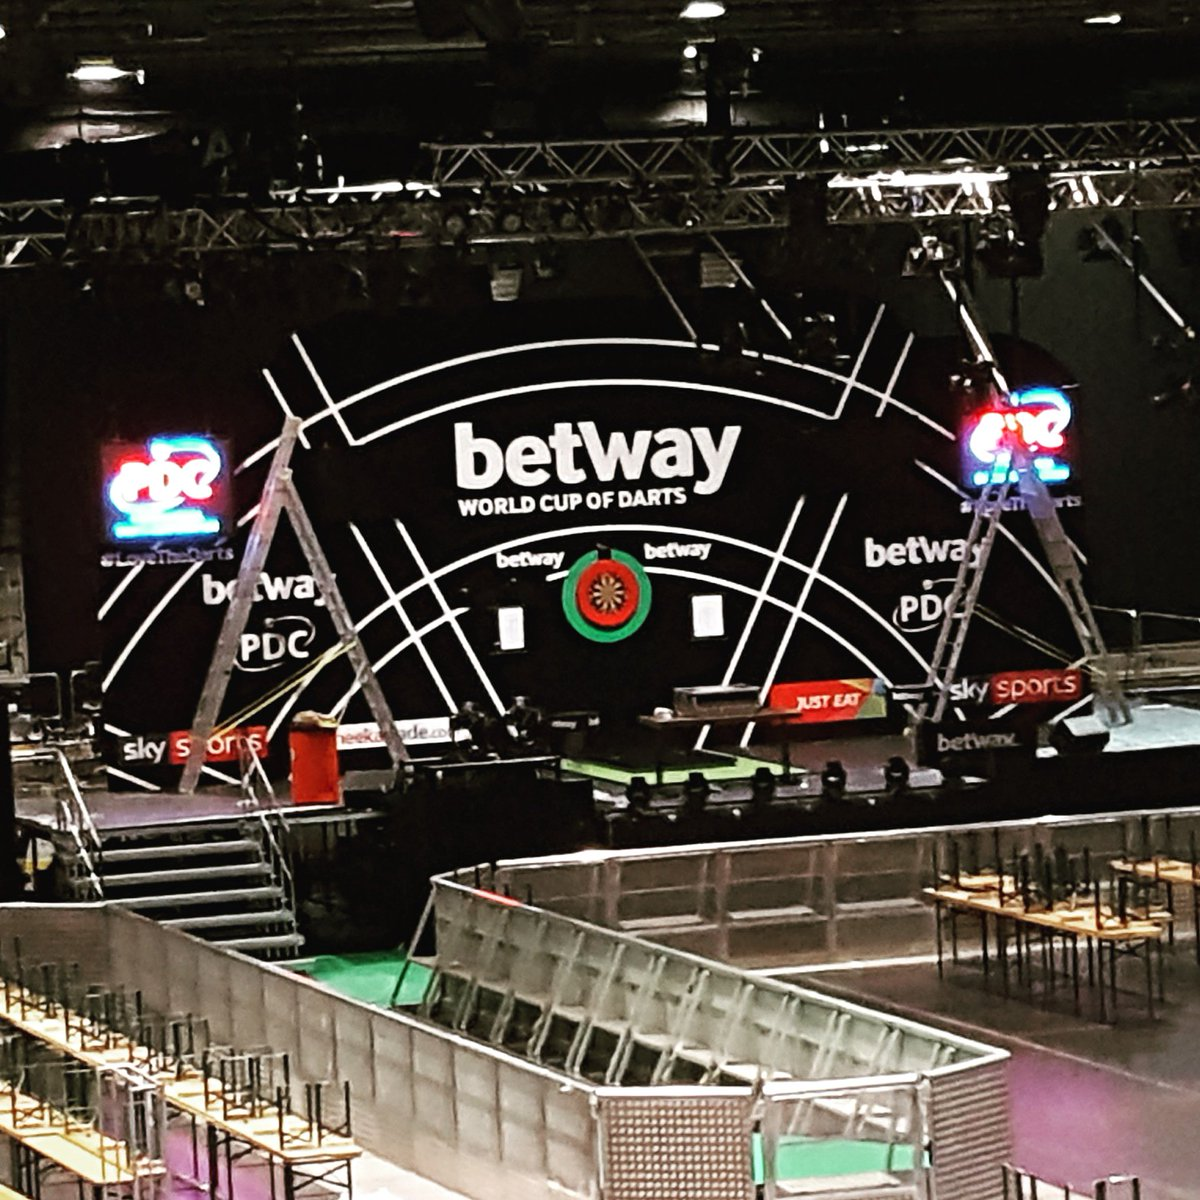 Its World Cup of darts day... The stage is just about set. Good luck to our Team Unicorn players involved! #Frankfurt @OfficialPDC